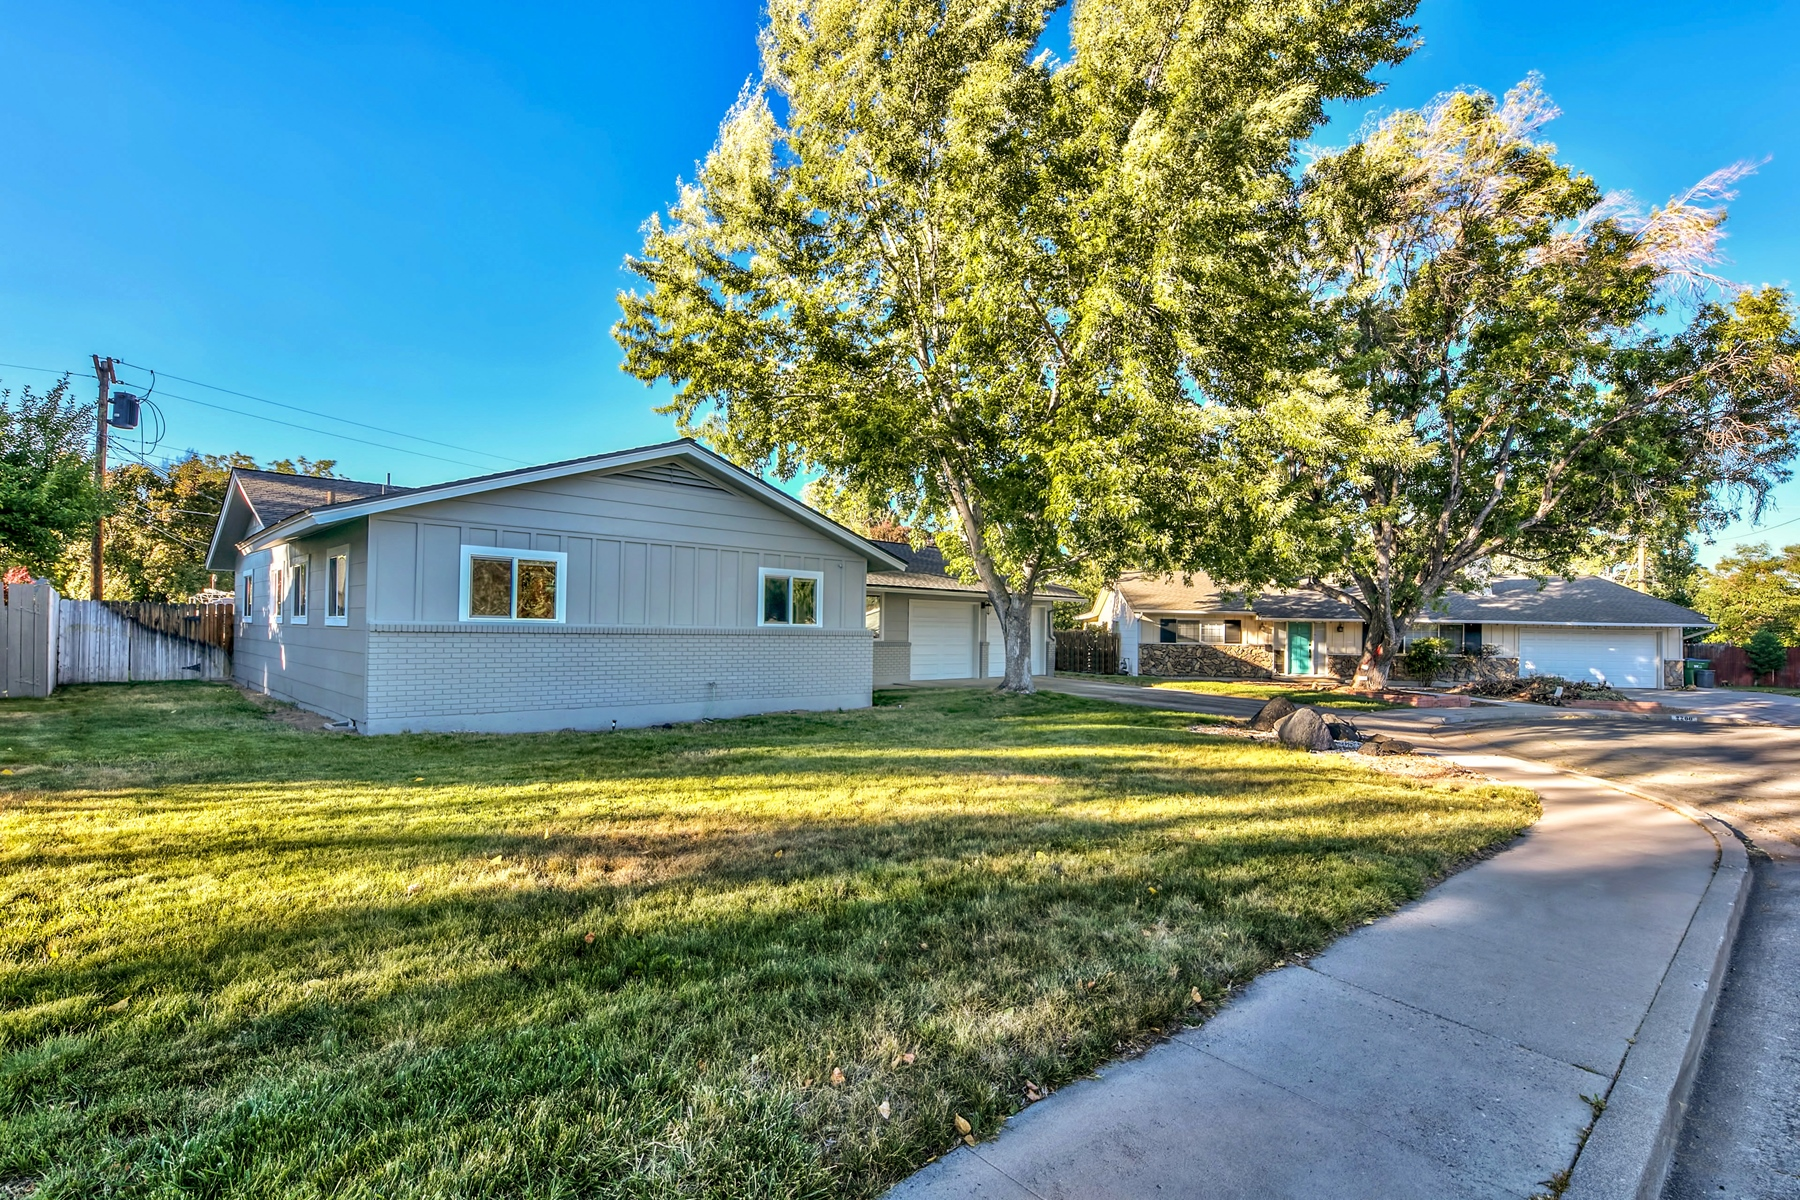 Additional photo for property listing at 1001 Golconda Drive, Reno, Nevada 1001 Golconda Dr. Reno, Nevada 89509 United States